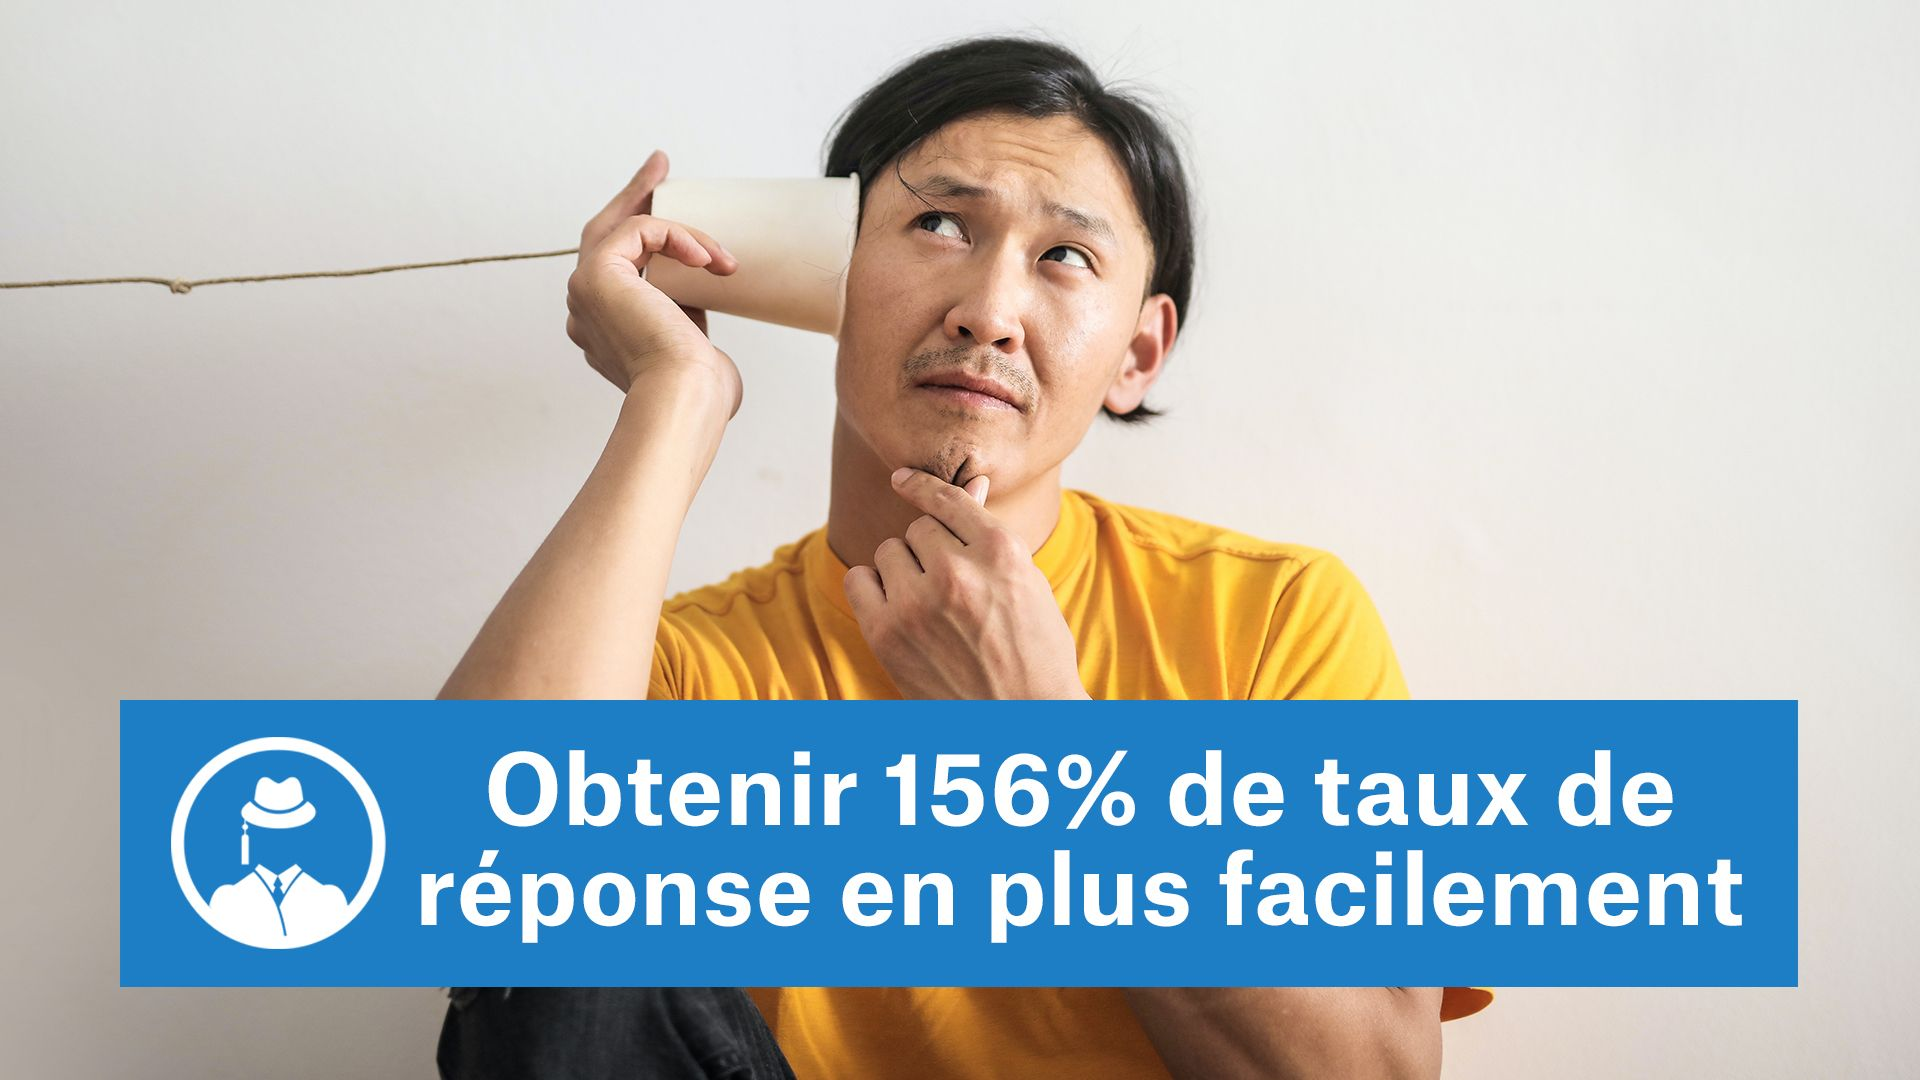 Obtenir 156% de taux de réponse en plus facilement #GrowthHacking #WebMarketing #FormationGrowthHacking #CentreDeFormationFrance #TunnelAARRR #AARRR #SocialMedia #CommunityManagement #SEO #MarketingDigital #SiteWeb